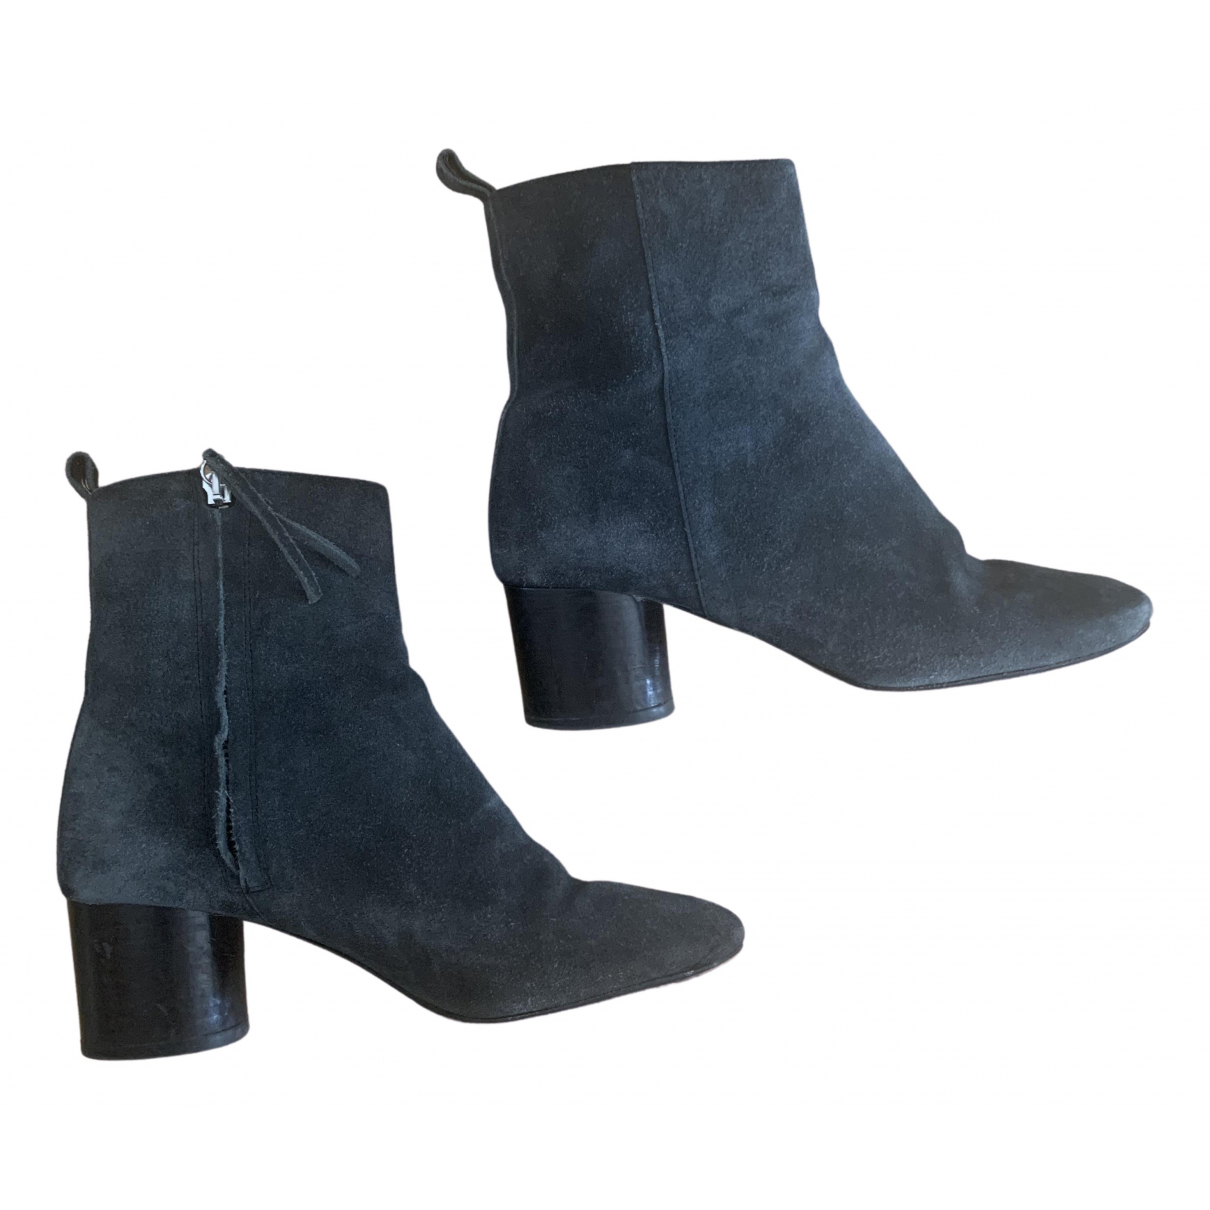 Isabel Marant Deyissa Grey Suede Ankle boots for Women 37 EU